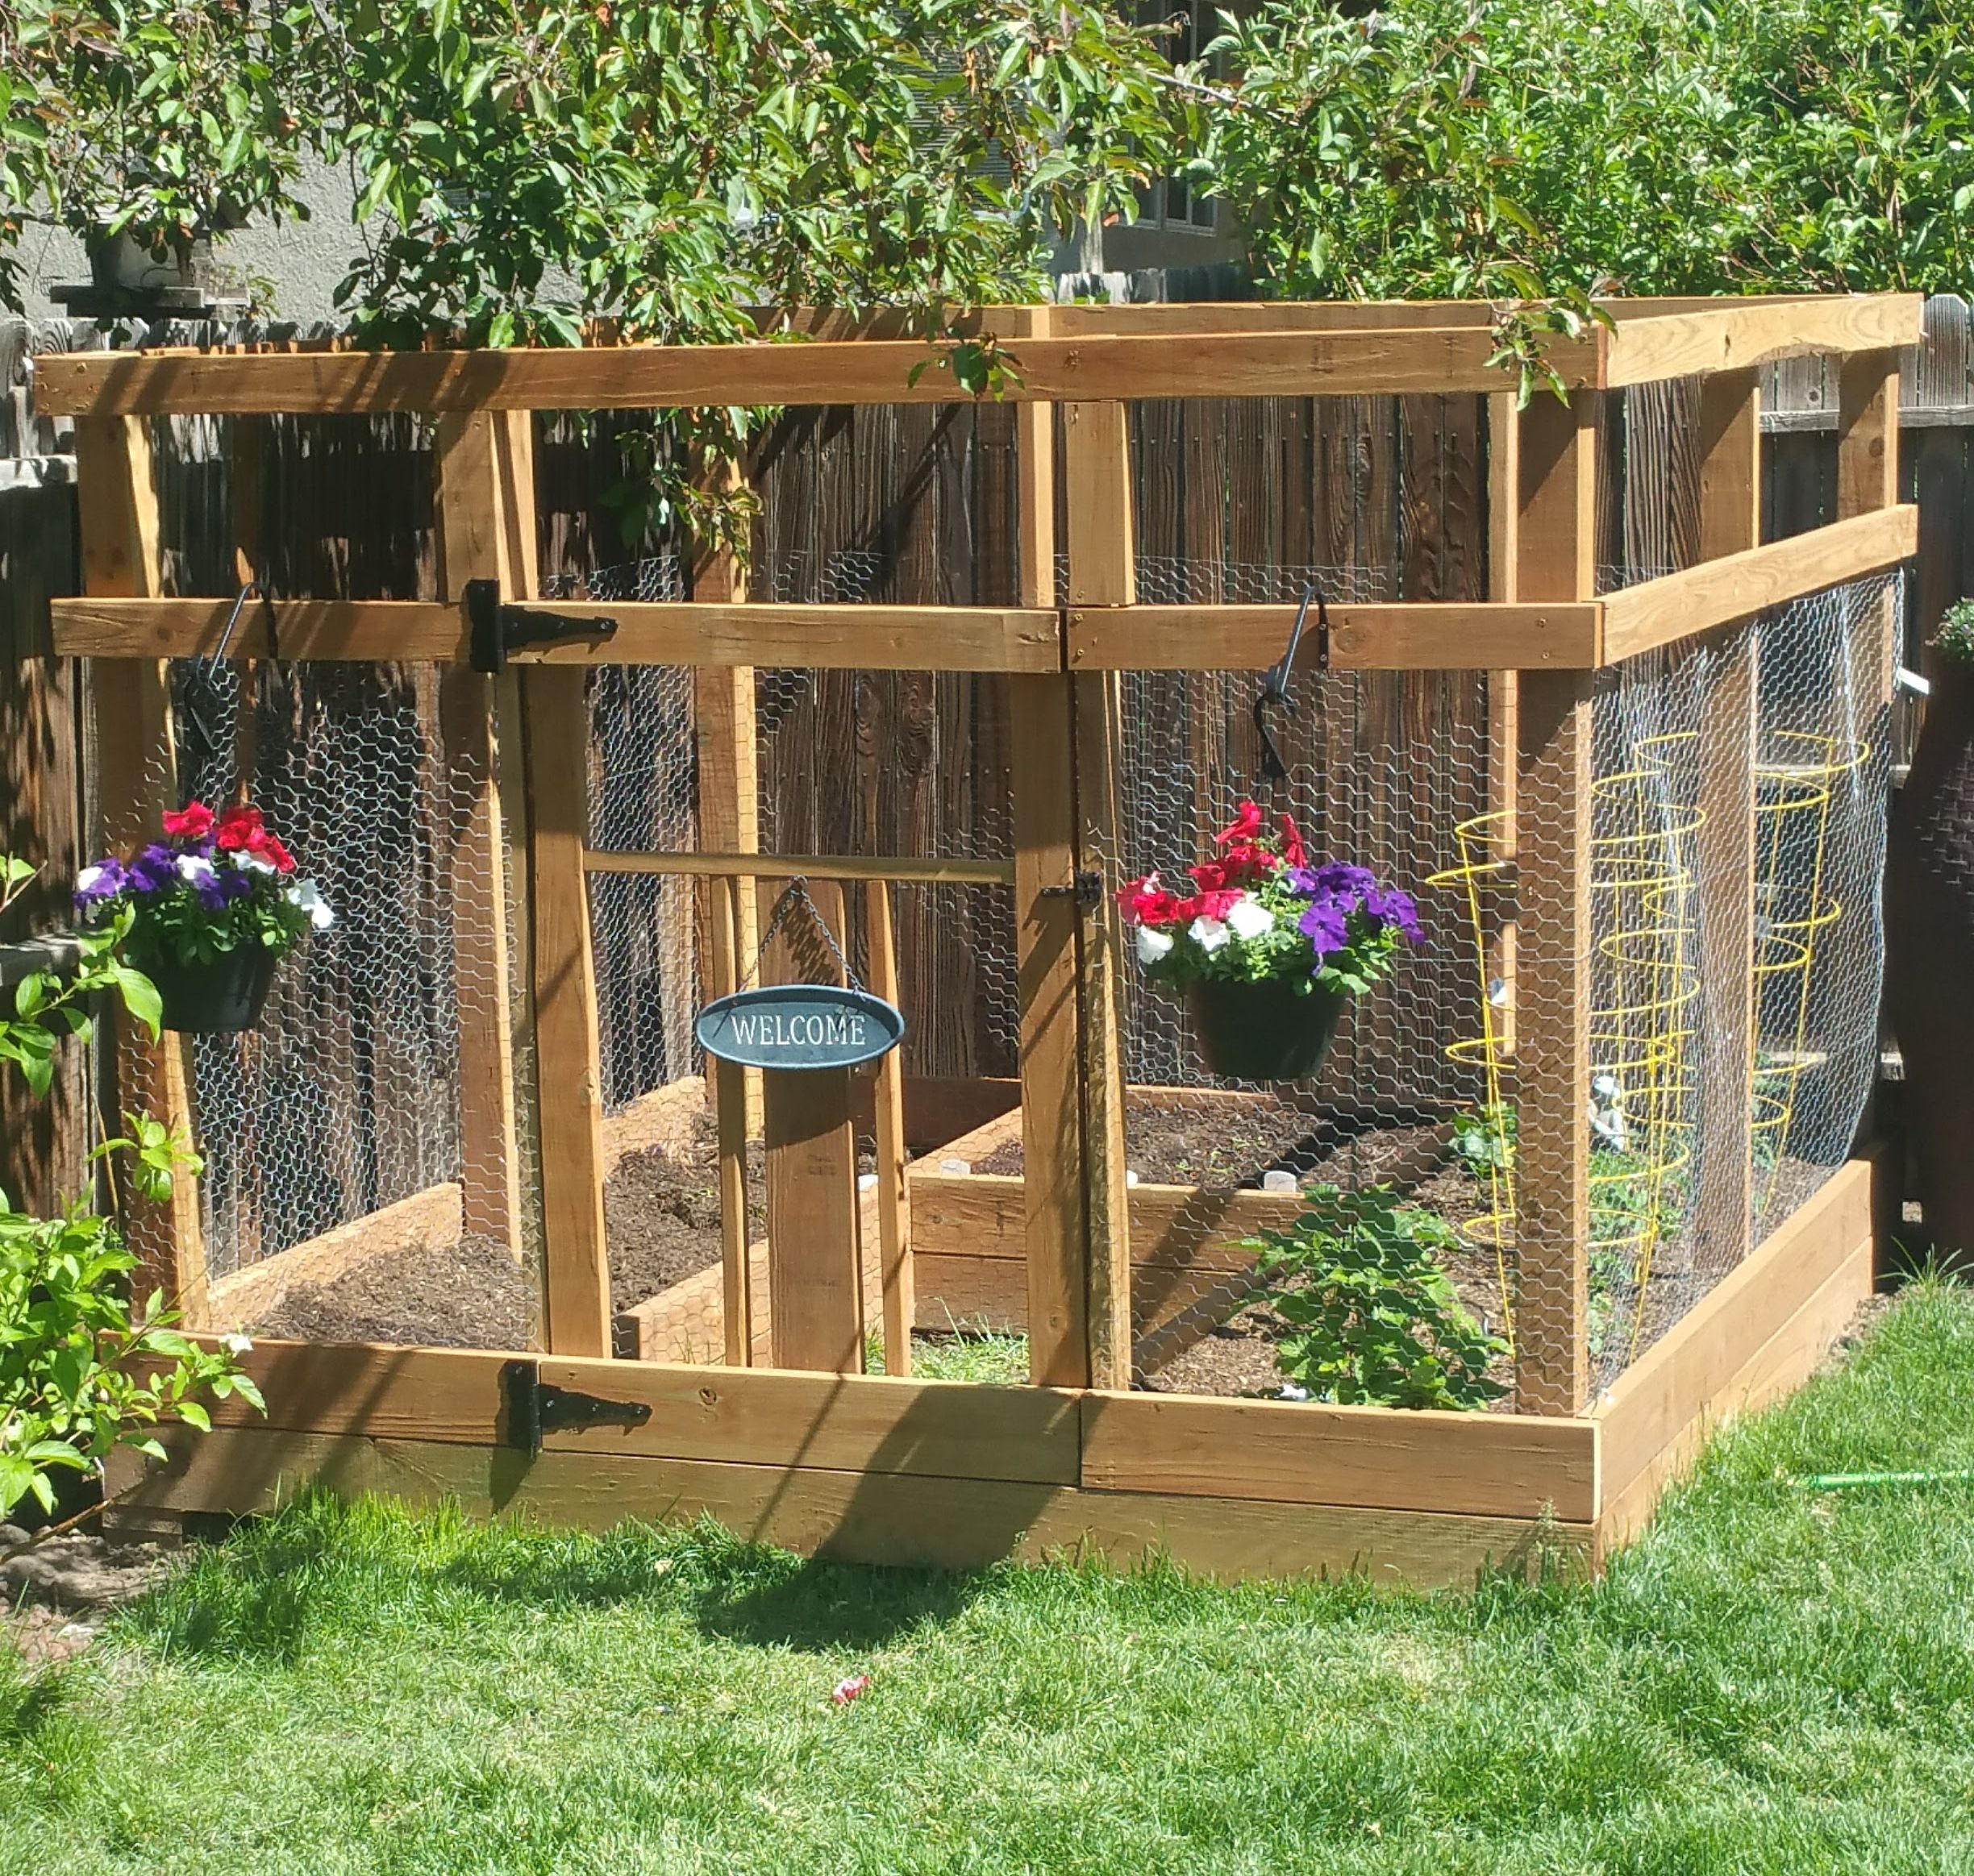 Ana White | Garden Enclosure With Custom Gate - Diy Projects ... avec Separation De Jardin